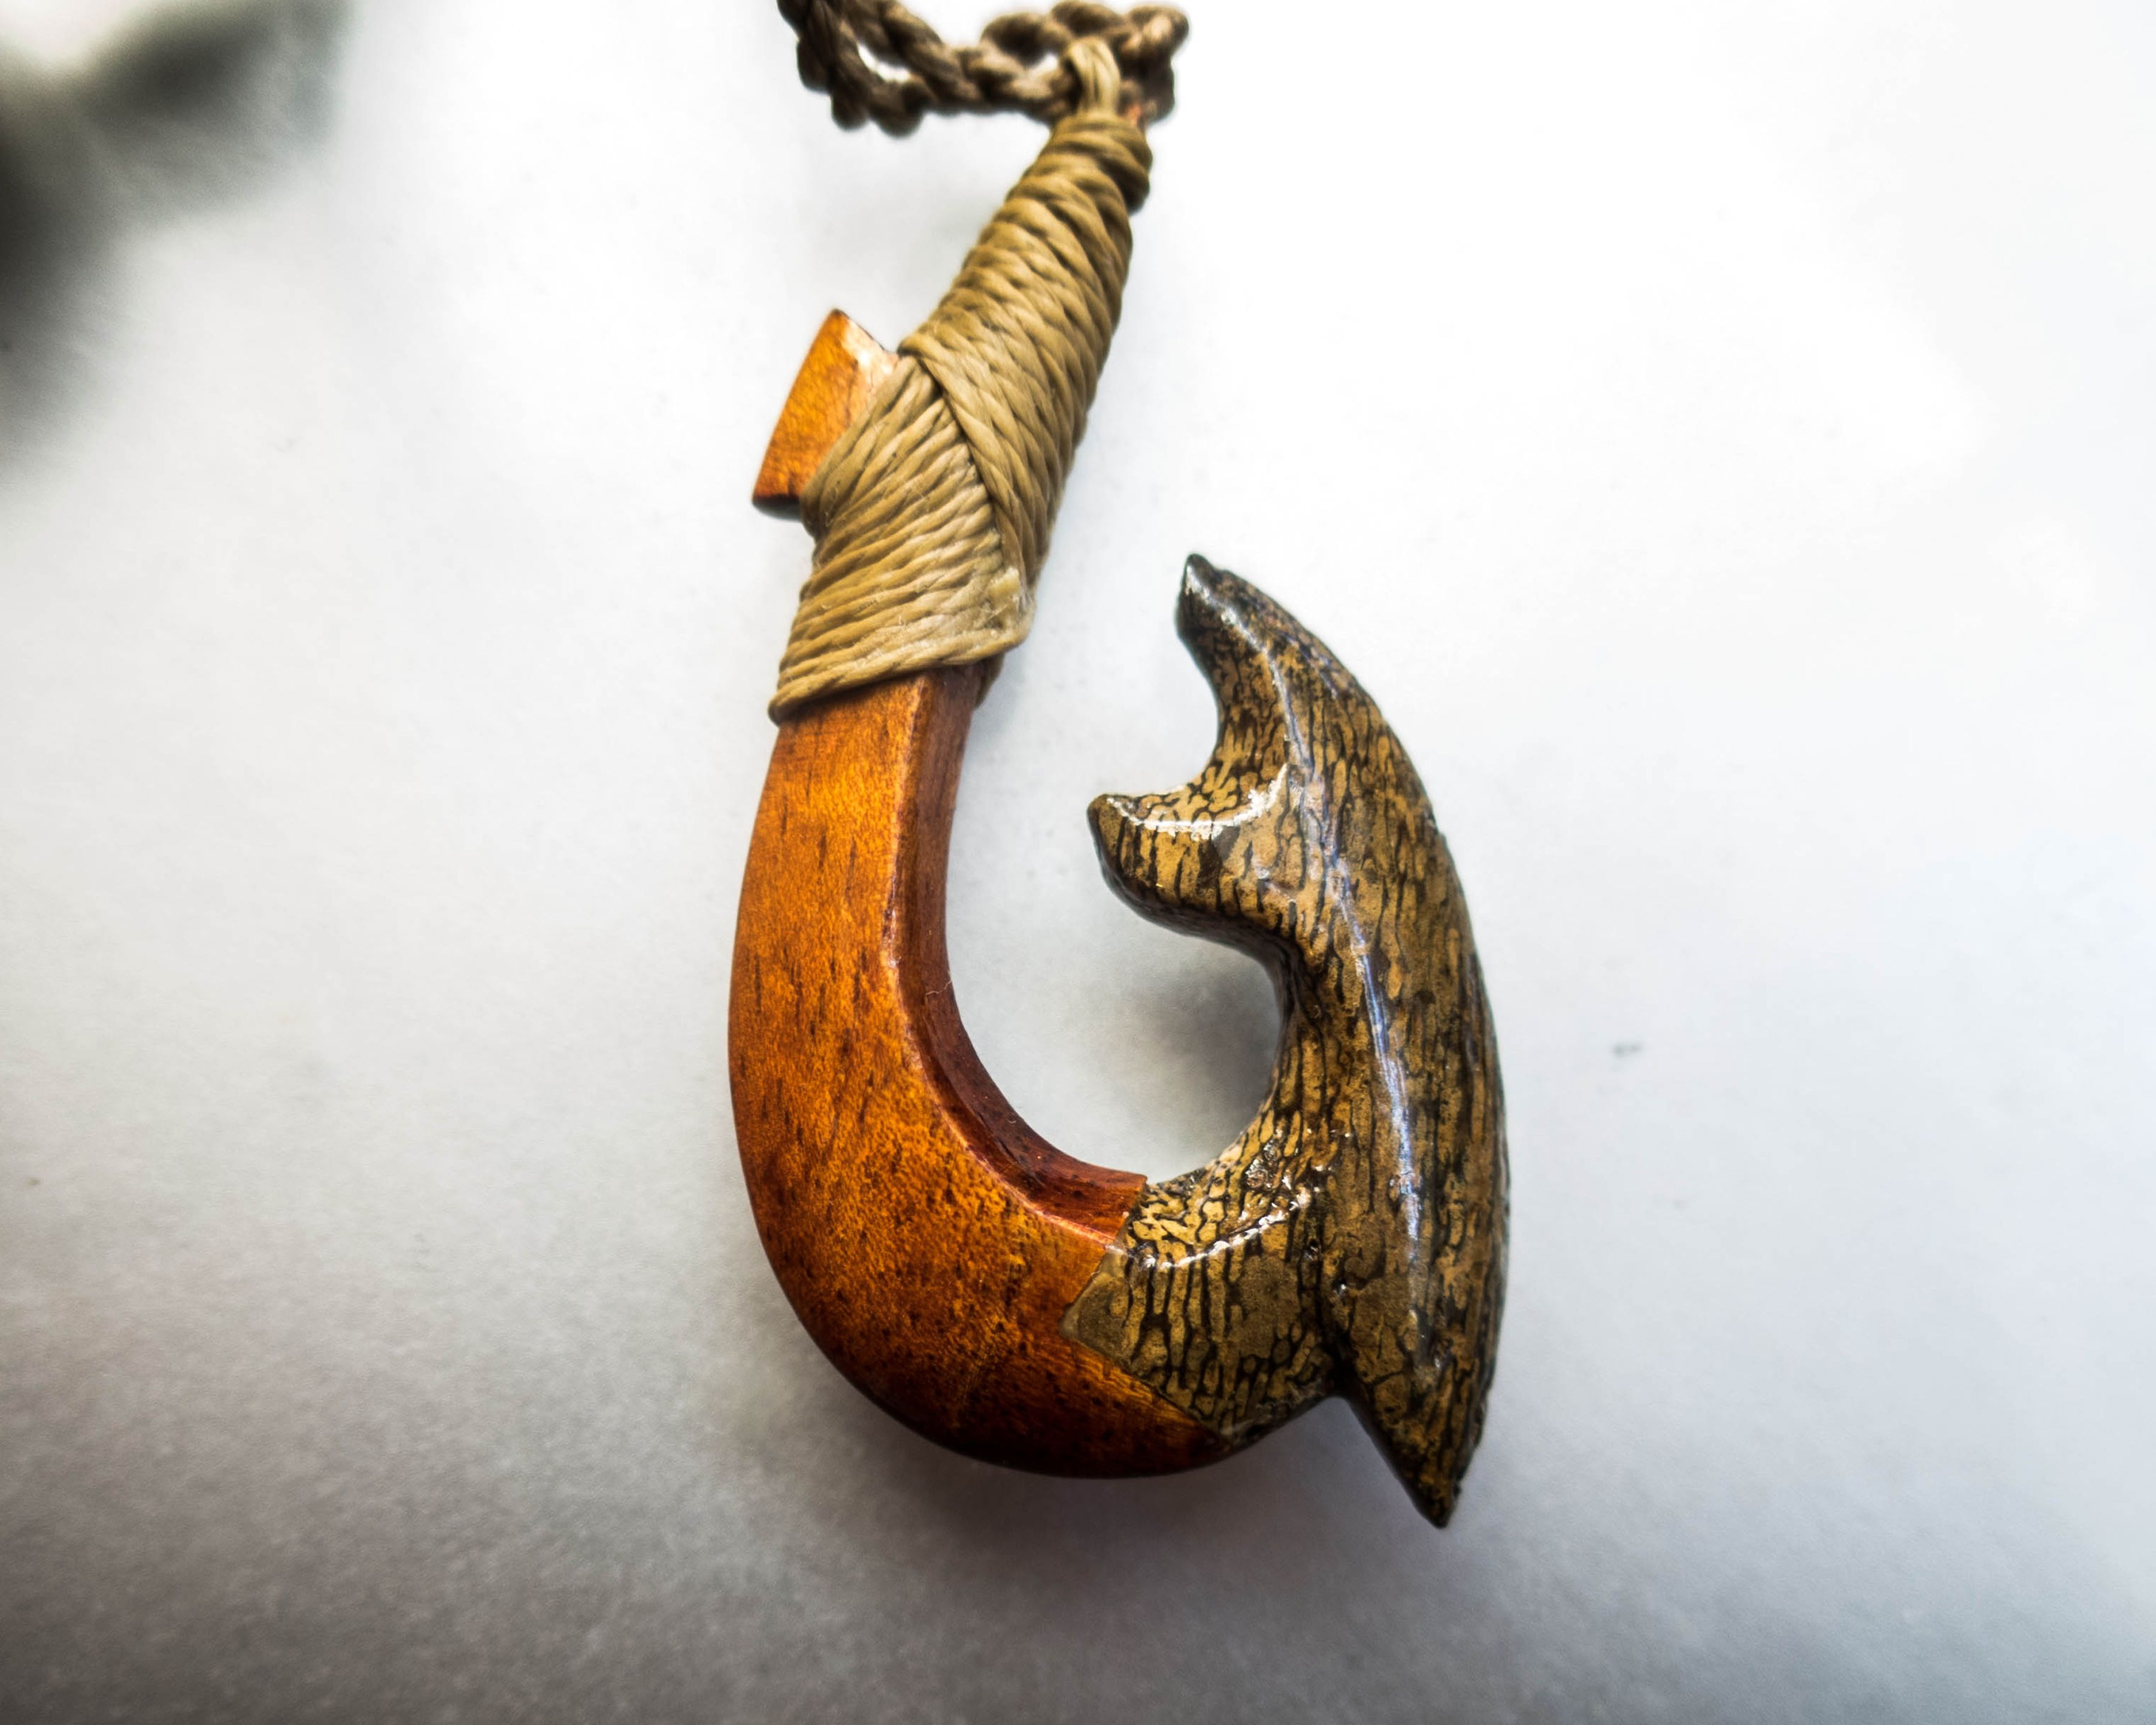 This exotic fish hook is made of koa wood and whale bone